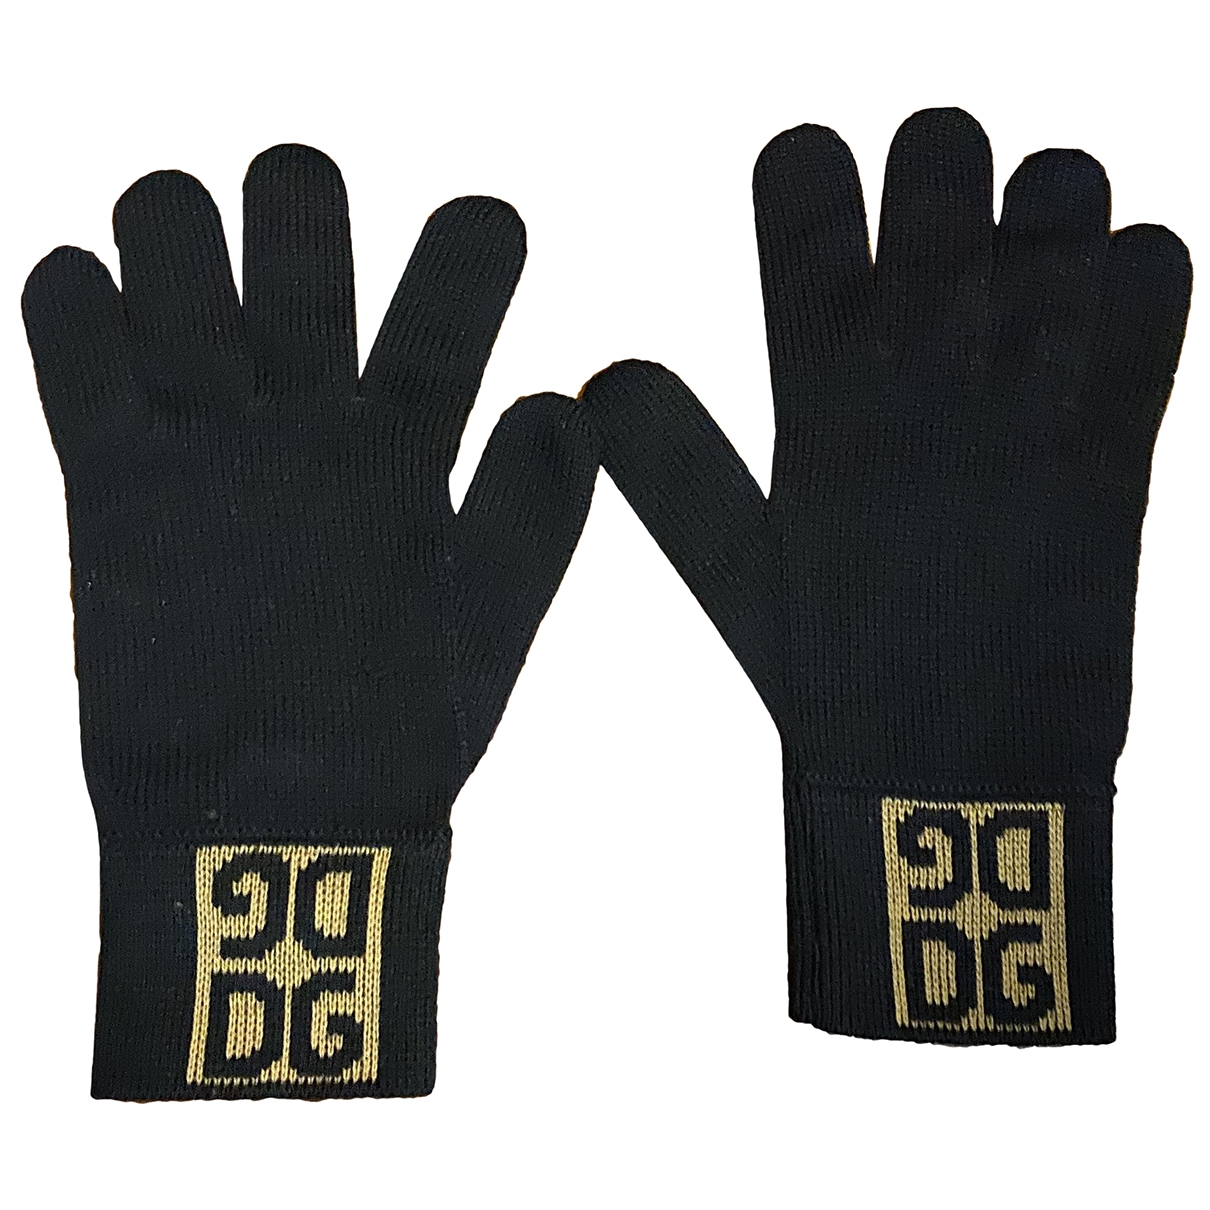 Dolce & Gabbana \N Black Wool Gloves for Women M International